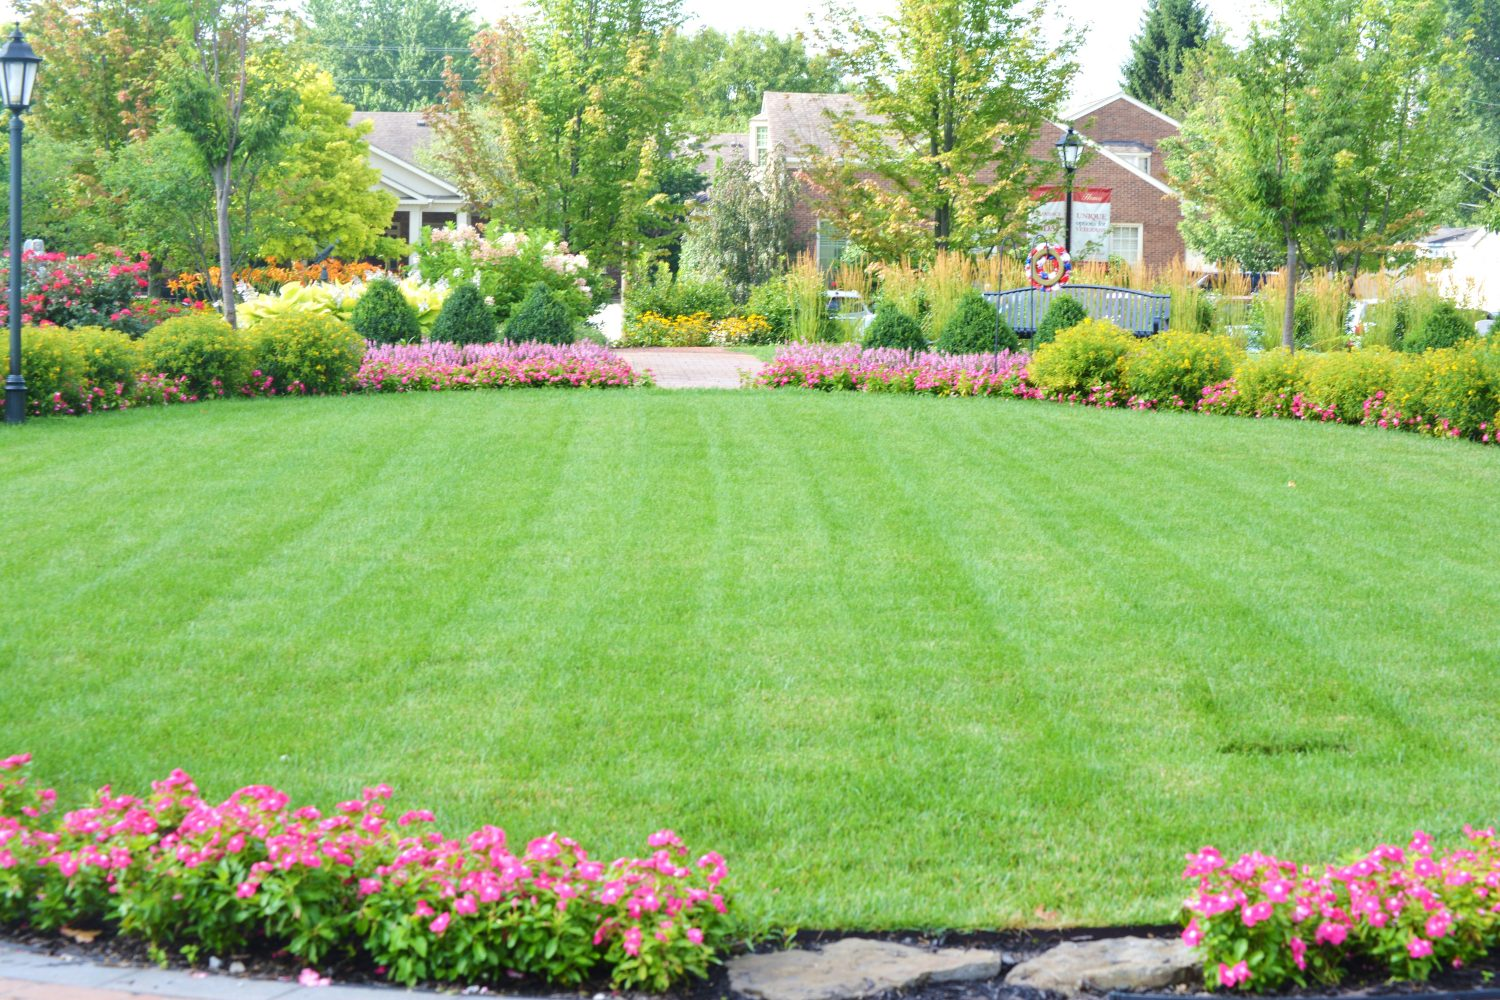 Mowed lawn inside of large circular flowerbed